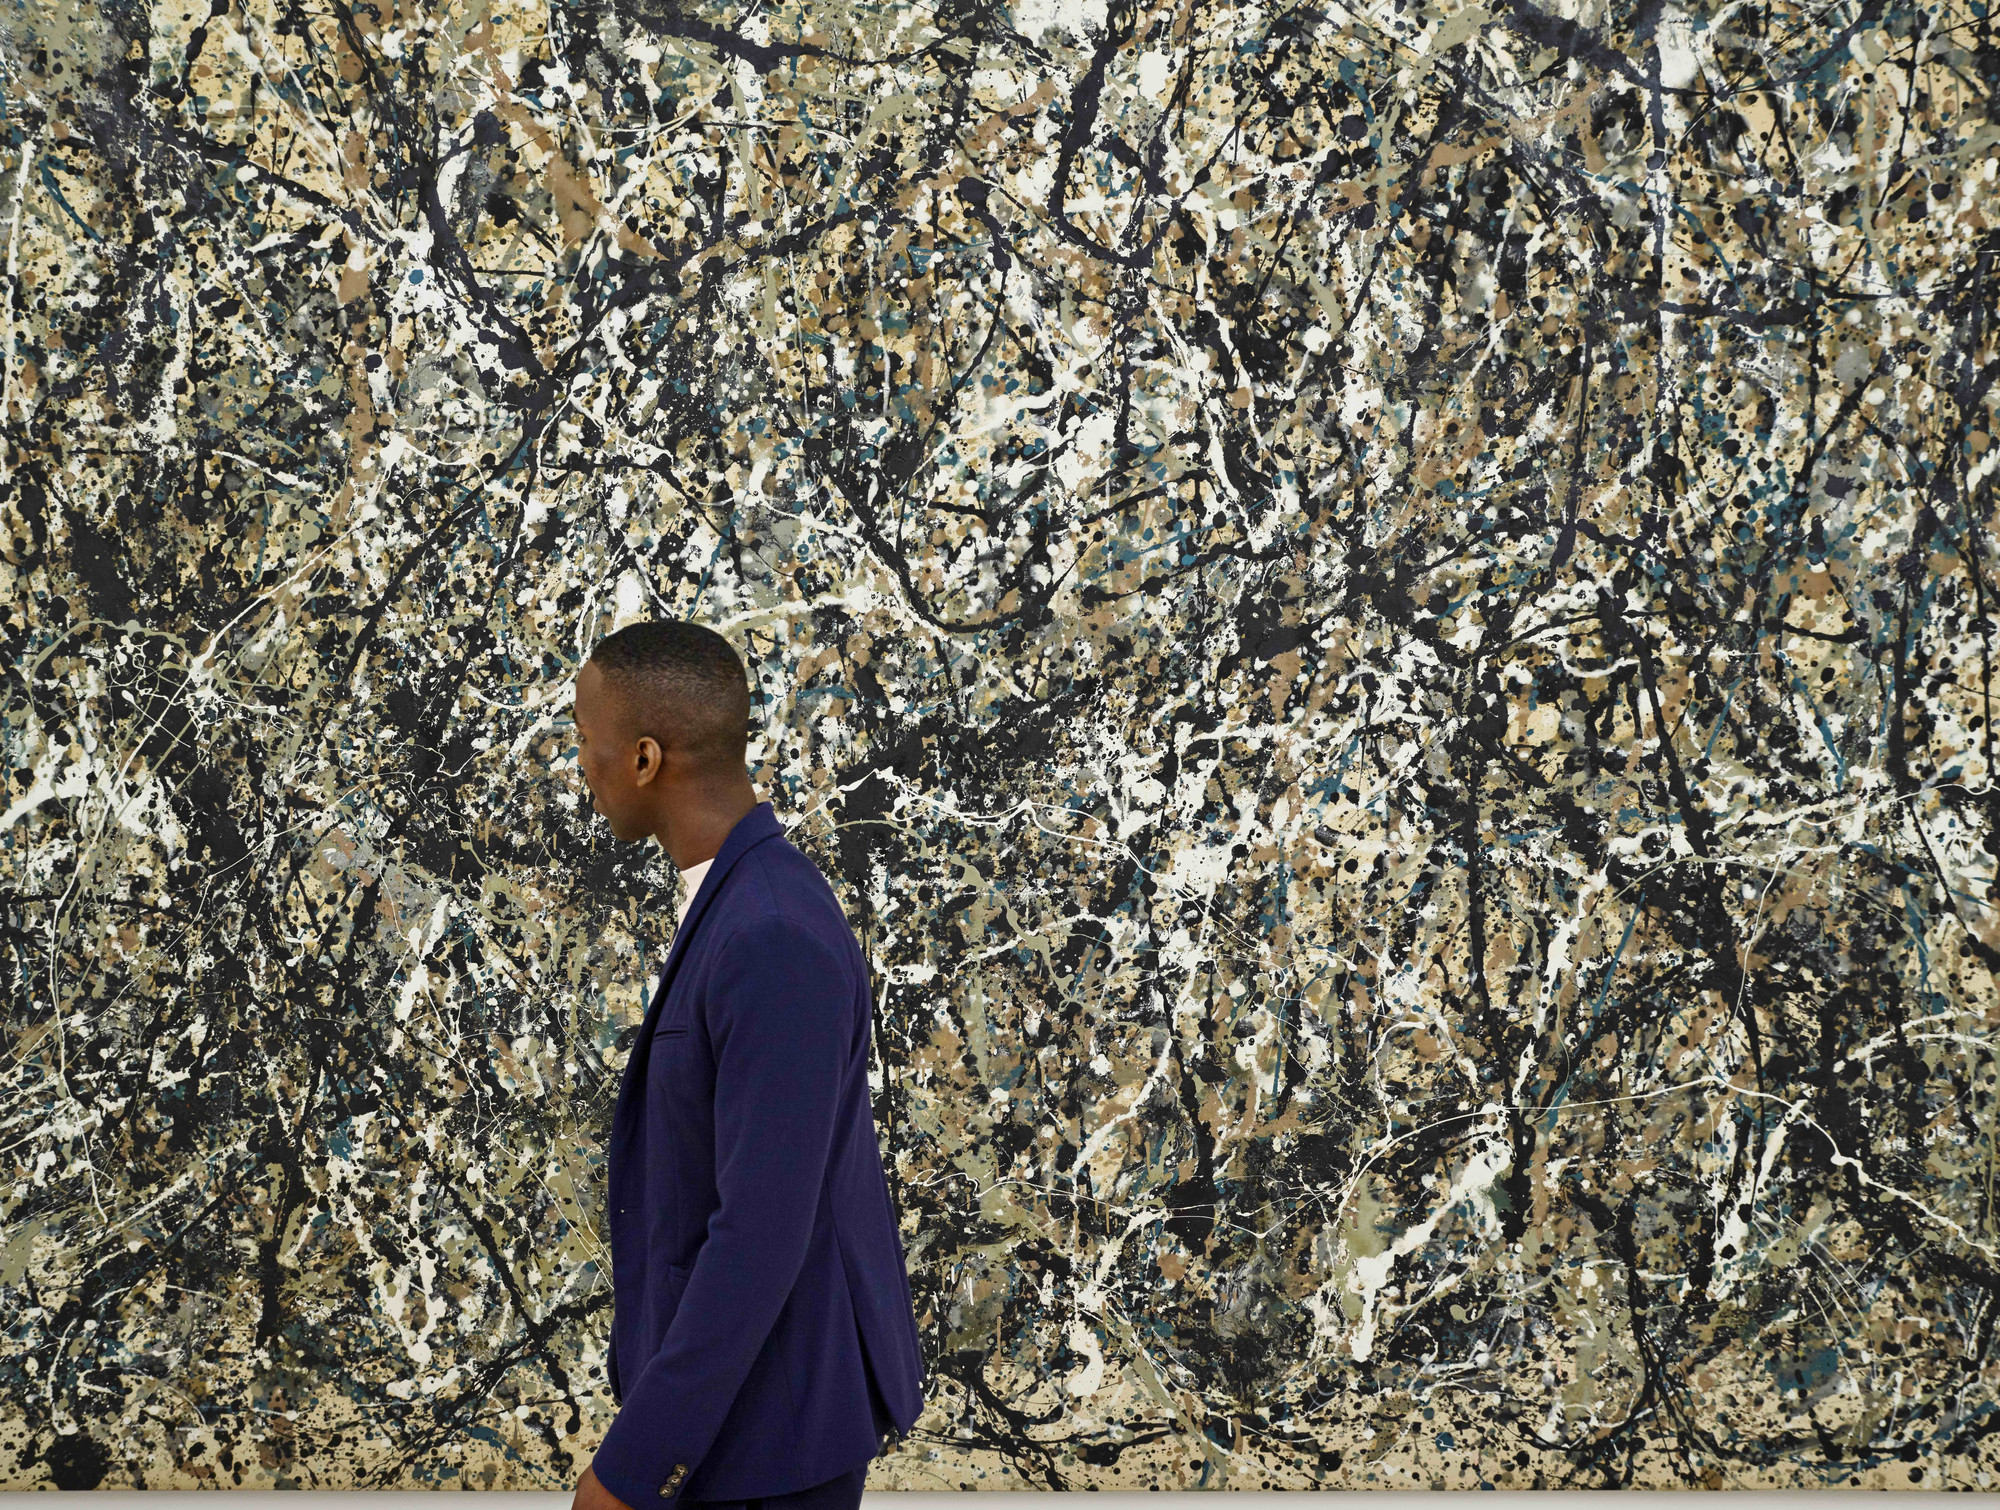 Photo: Noah Kalina. Shown: Jackson Pollock. One: Number 31, 1950 (detail). 1950. Oil and enamel paint on canvas. Sidney and Harriet Janis Collection Fund (by exchange). © 2019 Pollock-Krasner Foundation/Artists Rights Society (ARS), New York